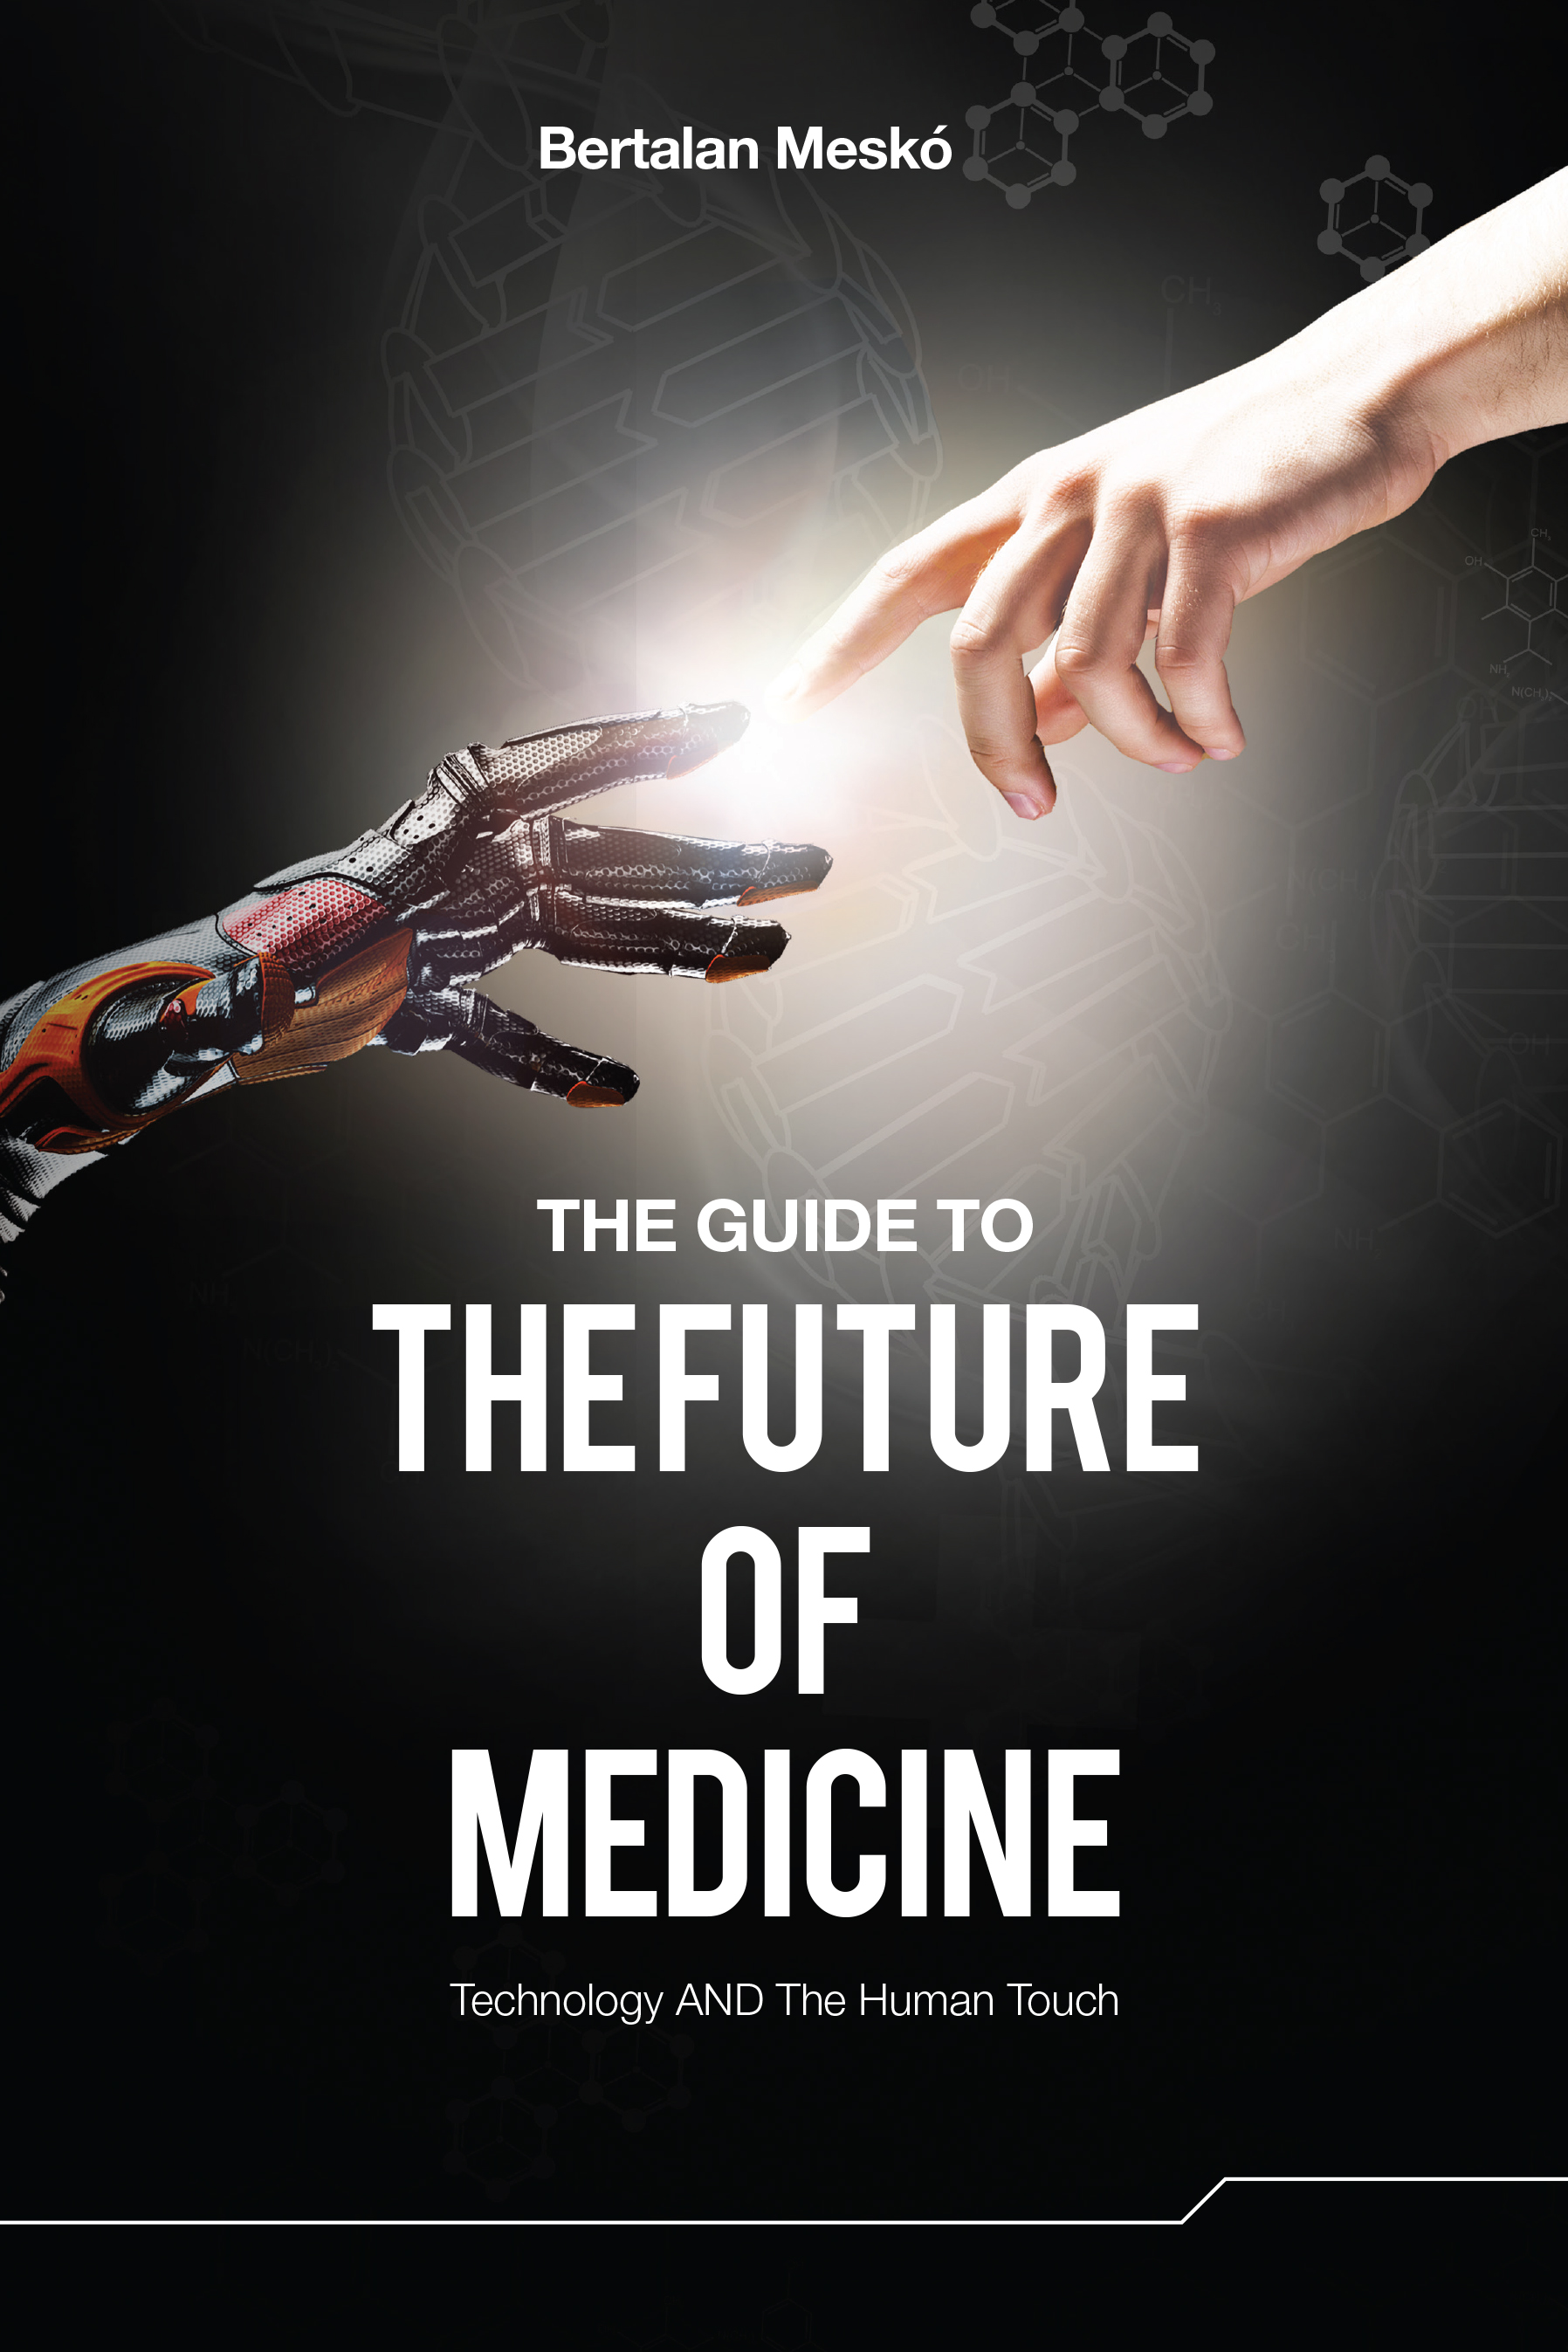 /wp-content/uploads/2014/09/the_guide_to_the_future_of_medicine_ebook_cover_532198.jpg